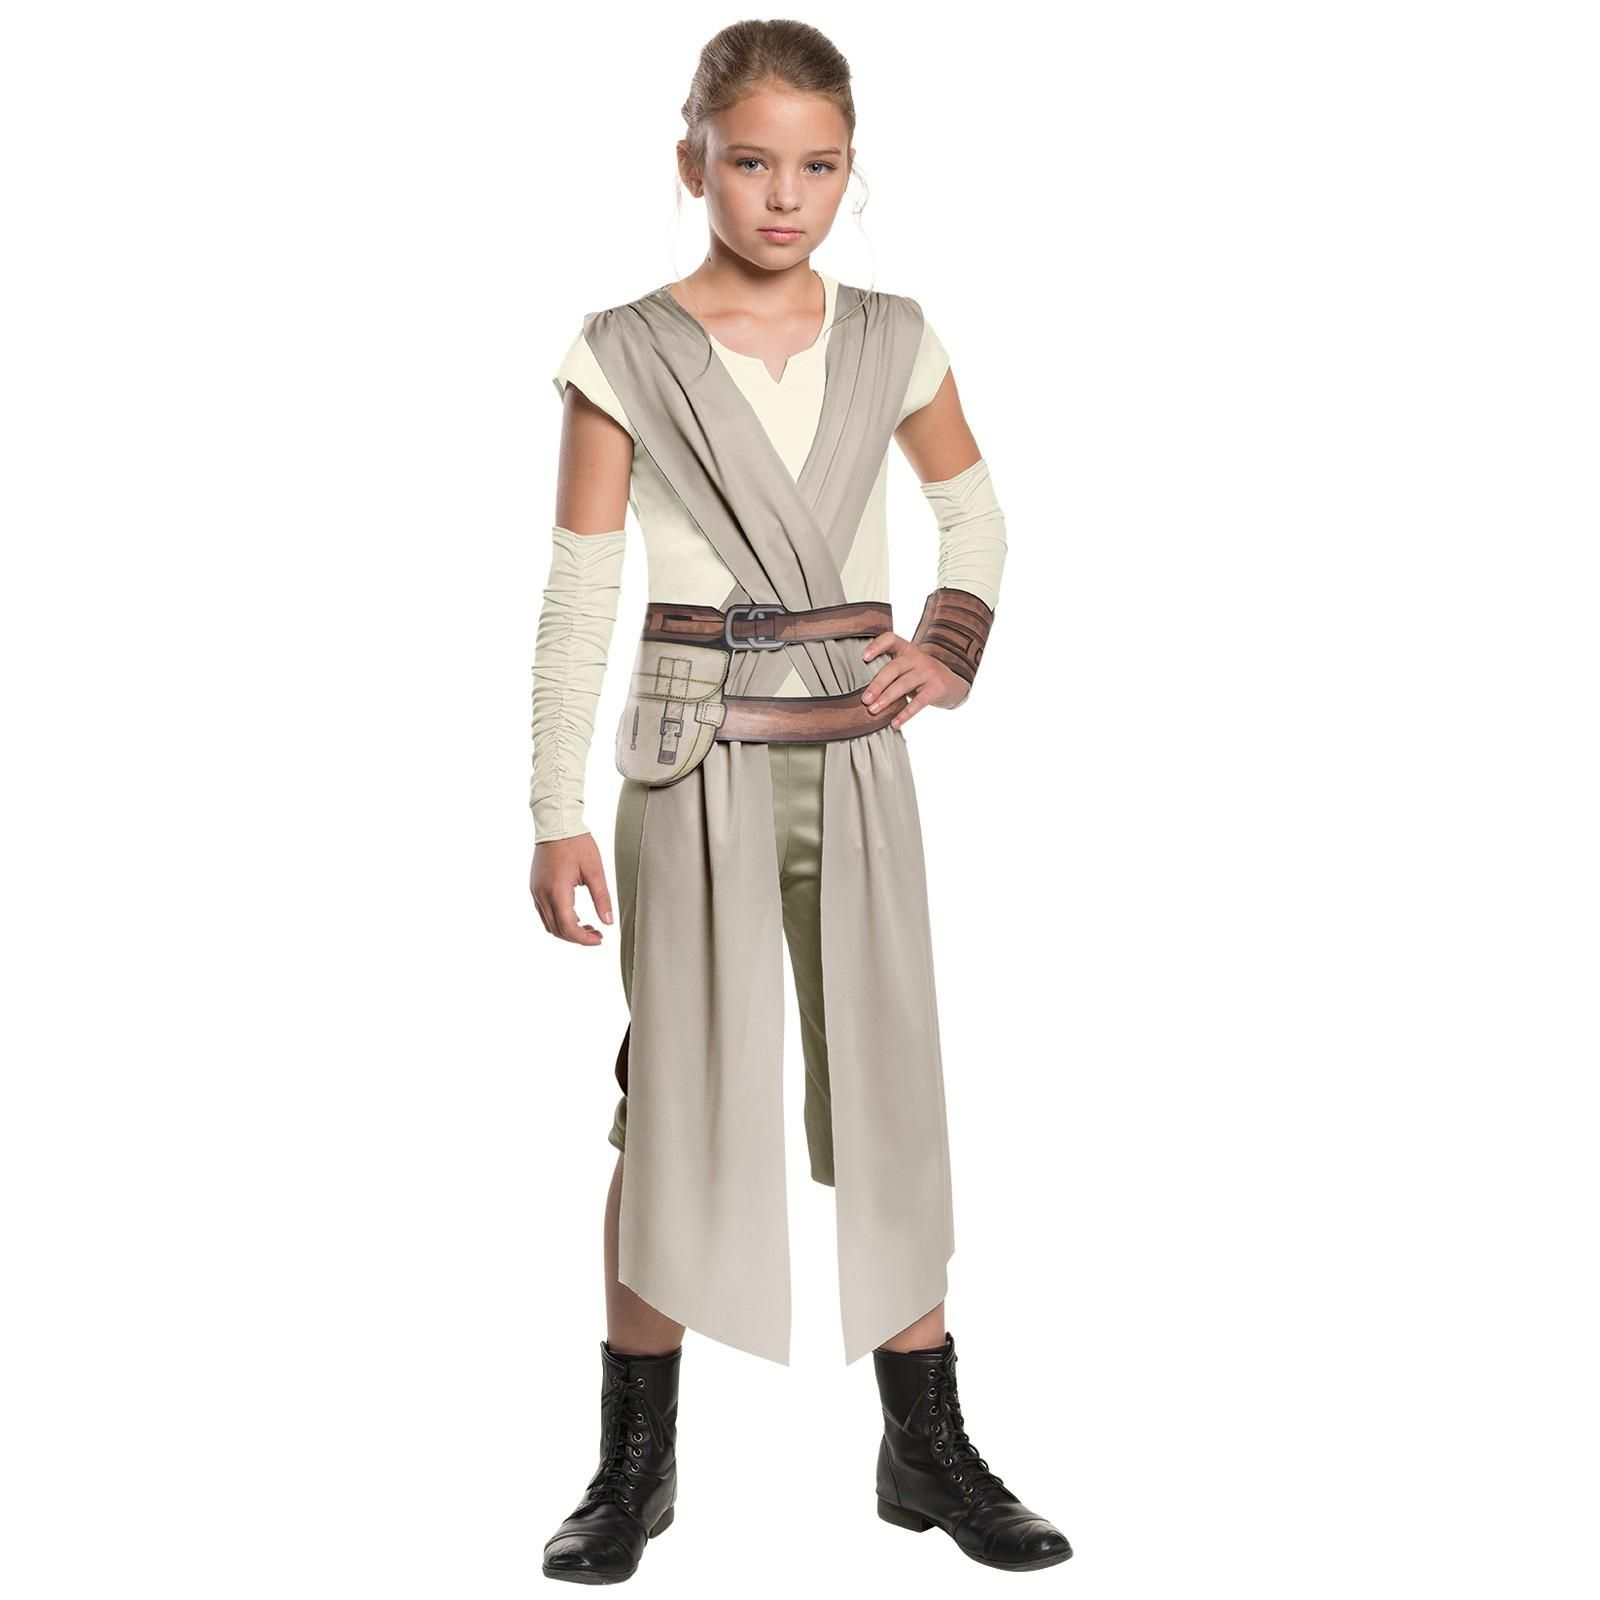 Star Wars Episode Vii Rey Costume | Costumes, Star and Star wars party